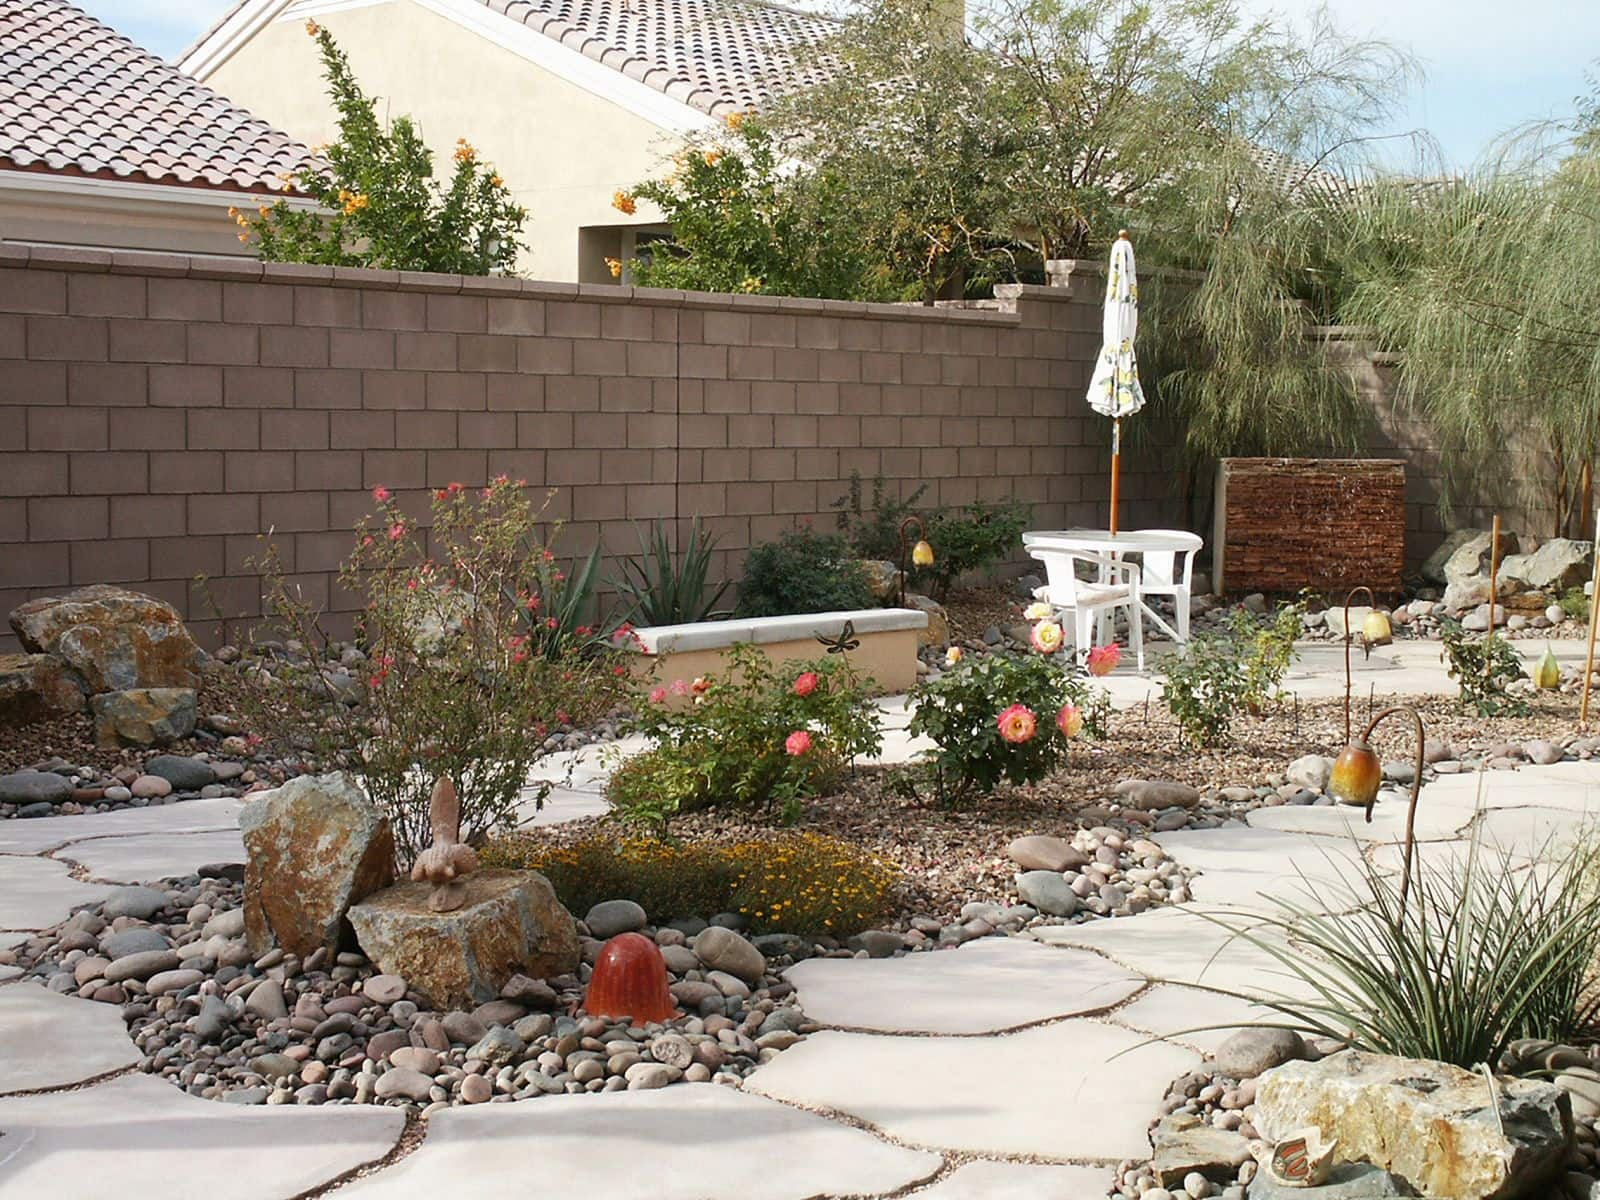 Stone paths at the desert looking plot